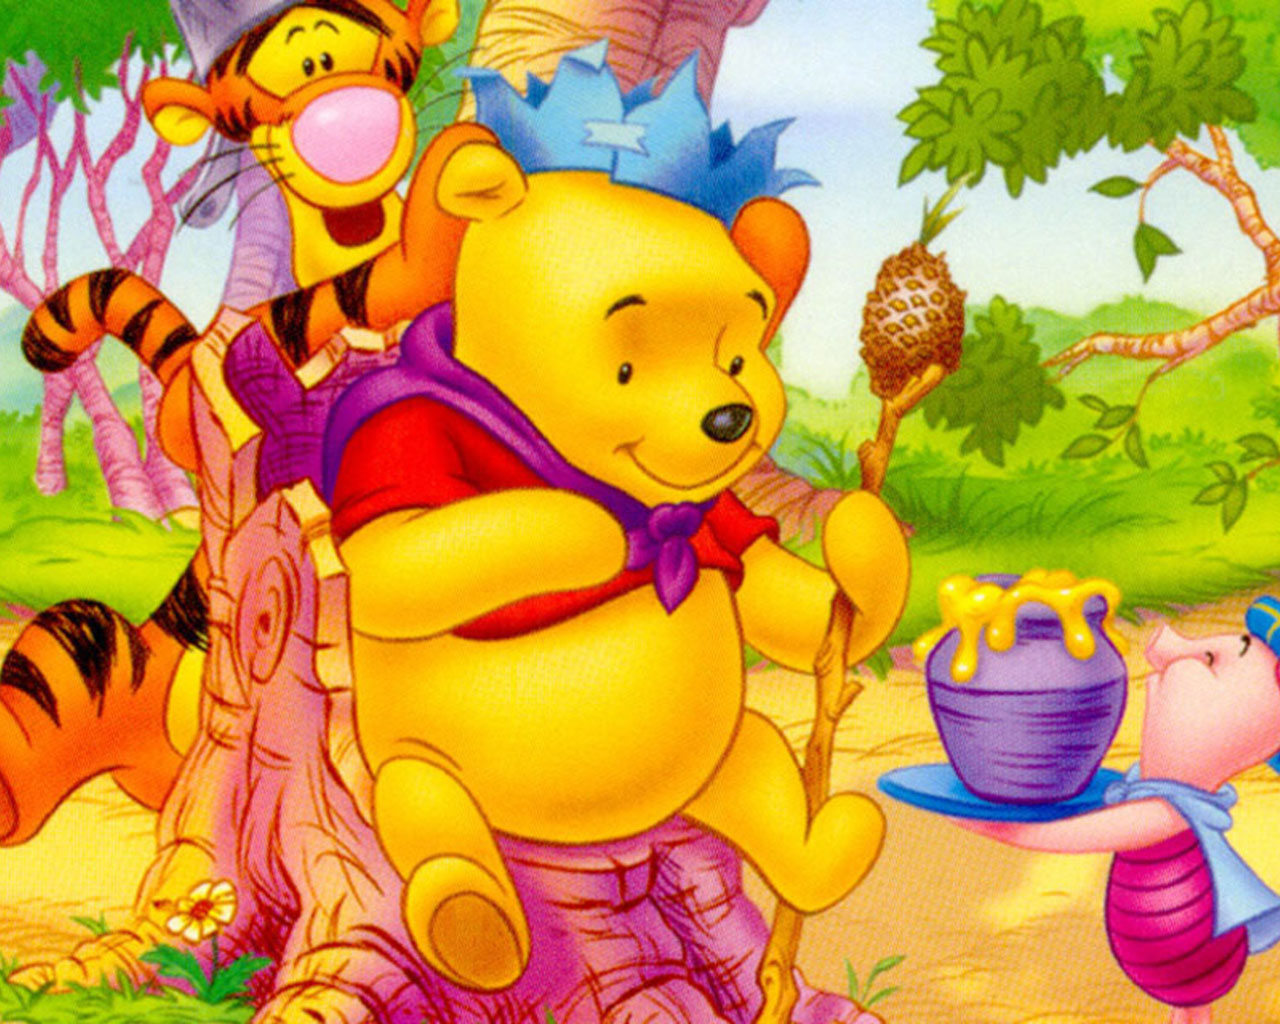 50 Winnie The Pooh Free Wallpaper On Wallpapersafari